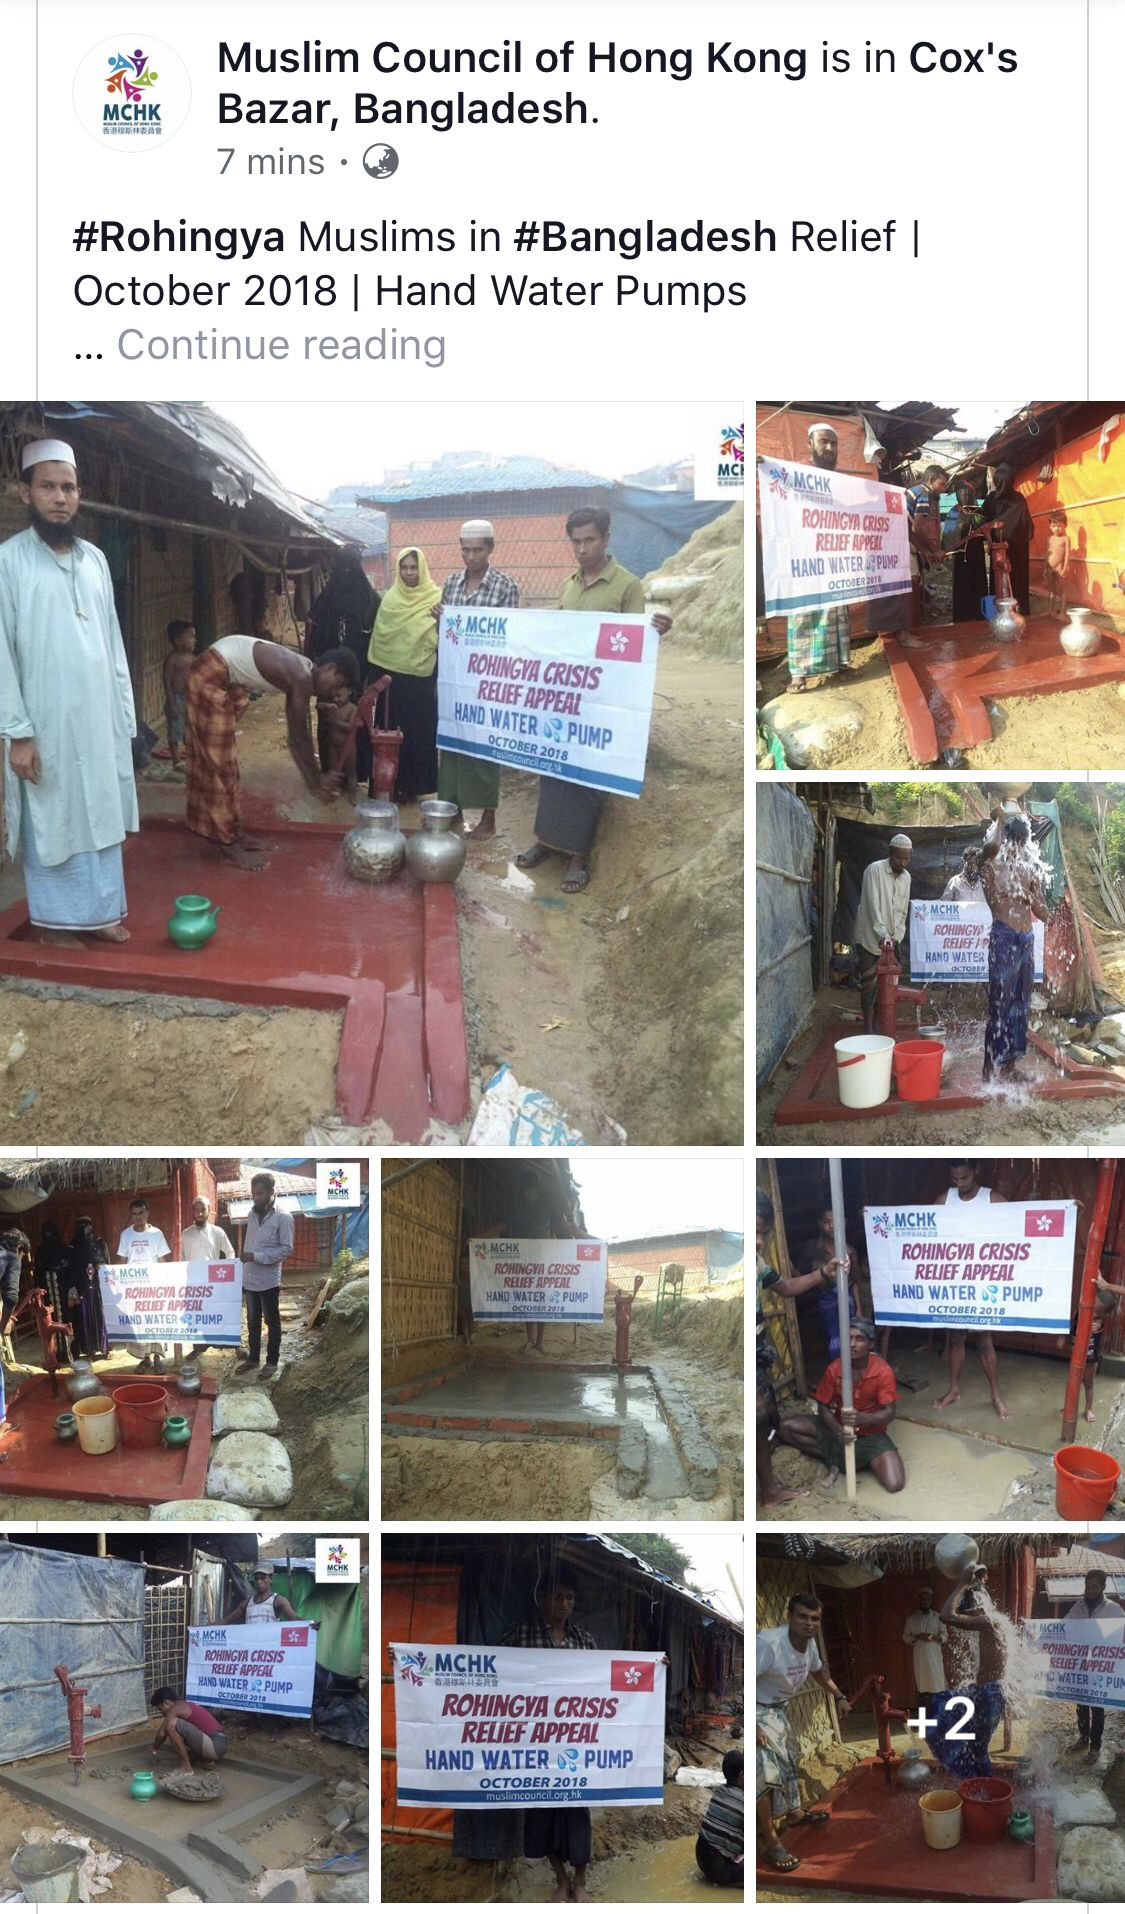 Alhumdulilah We Installed 4 More Water Wells With A Cost Of Hk 1430 Per Well Sponsor Your Well In Sha Allah Hand Water Pump Water Well Water Pumps